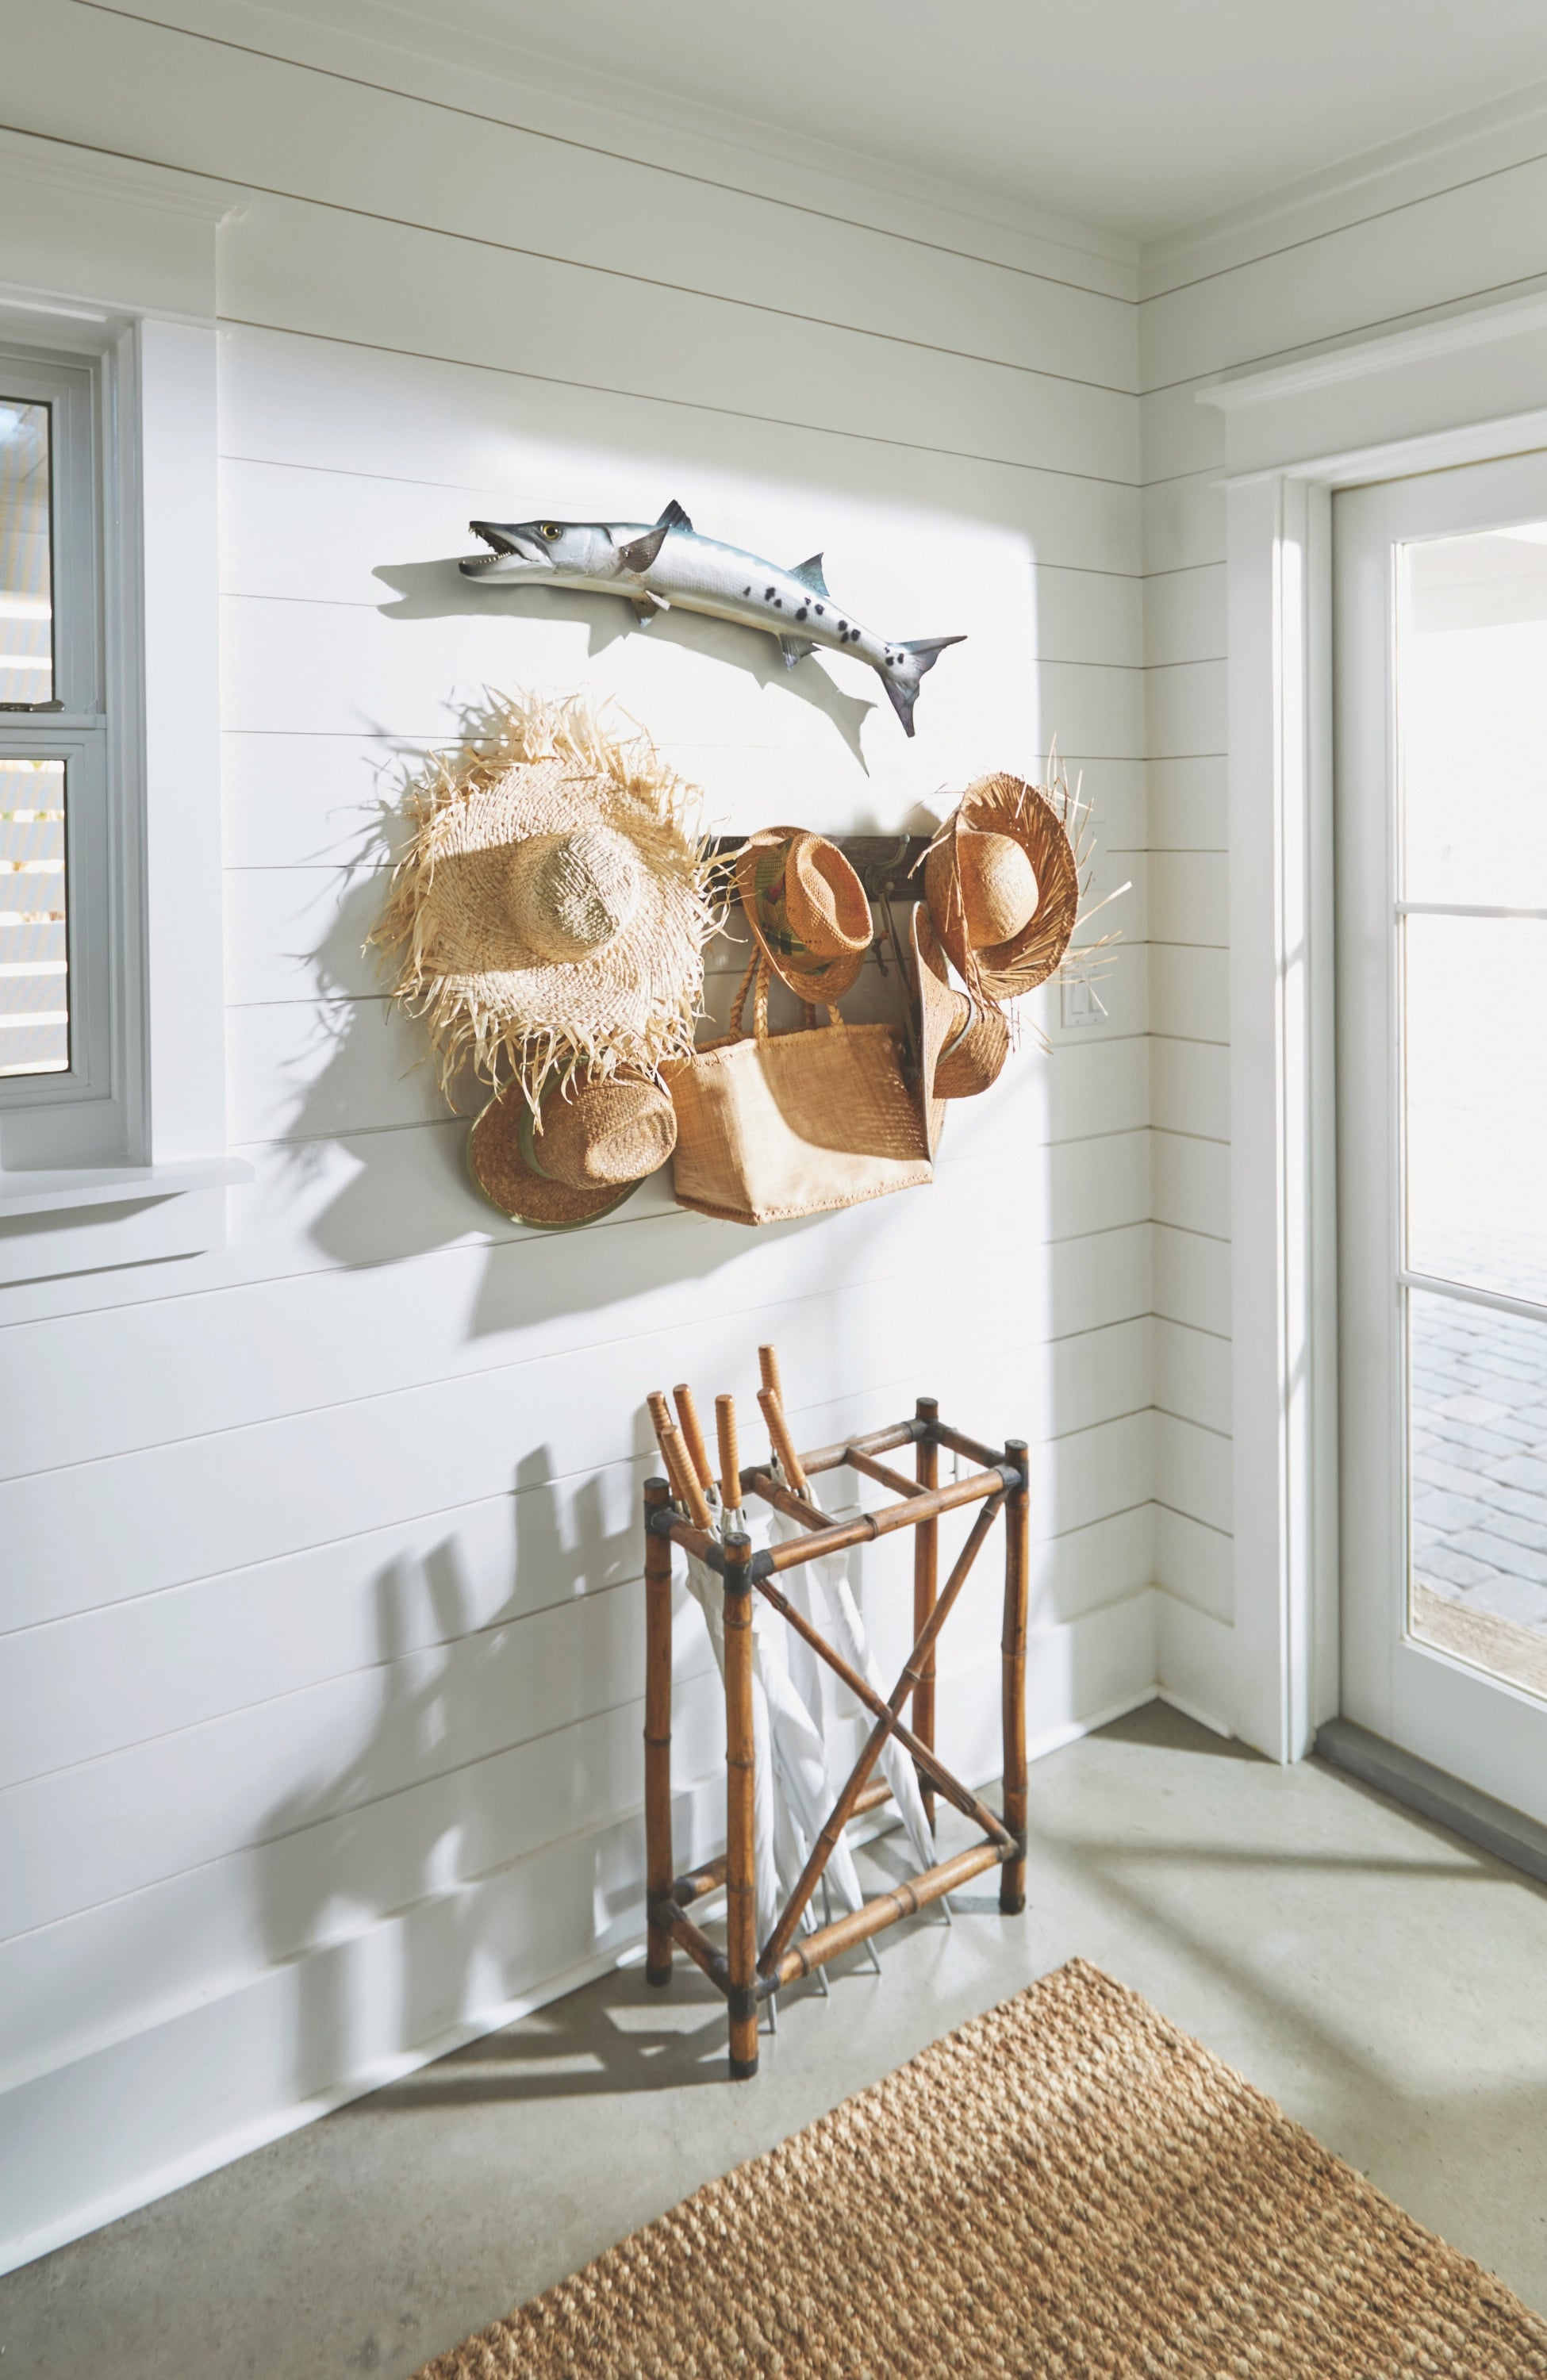 Interior details from a home in Grayton Beach, Florida, designed by Holly Shipman